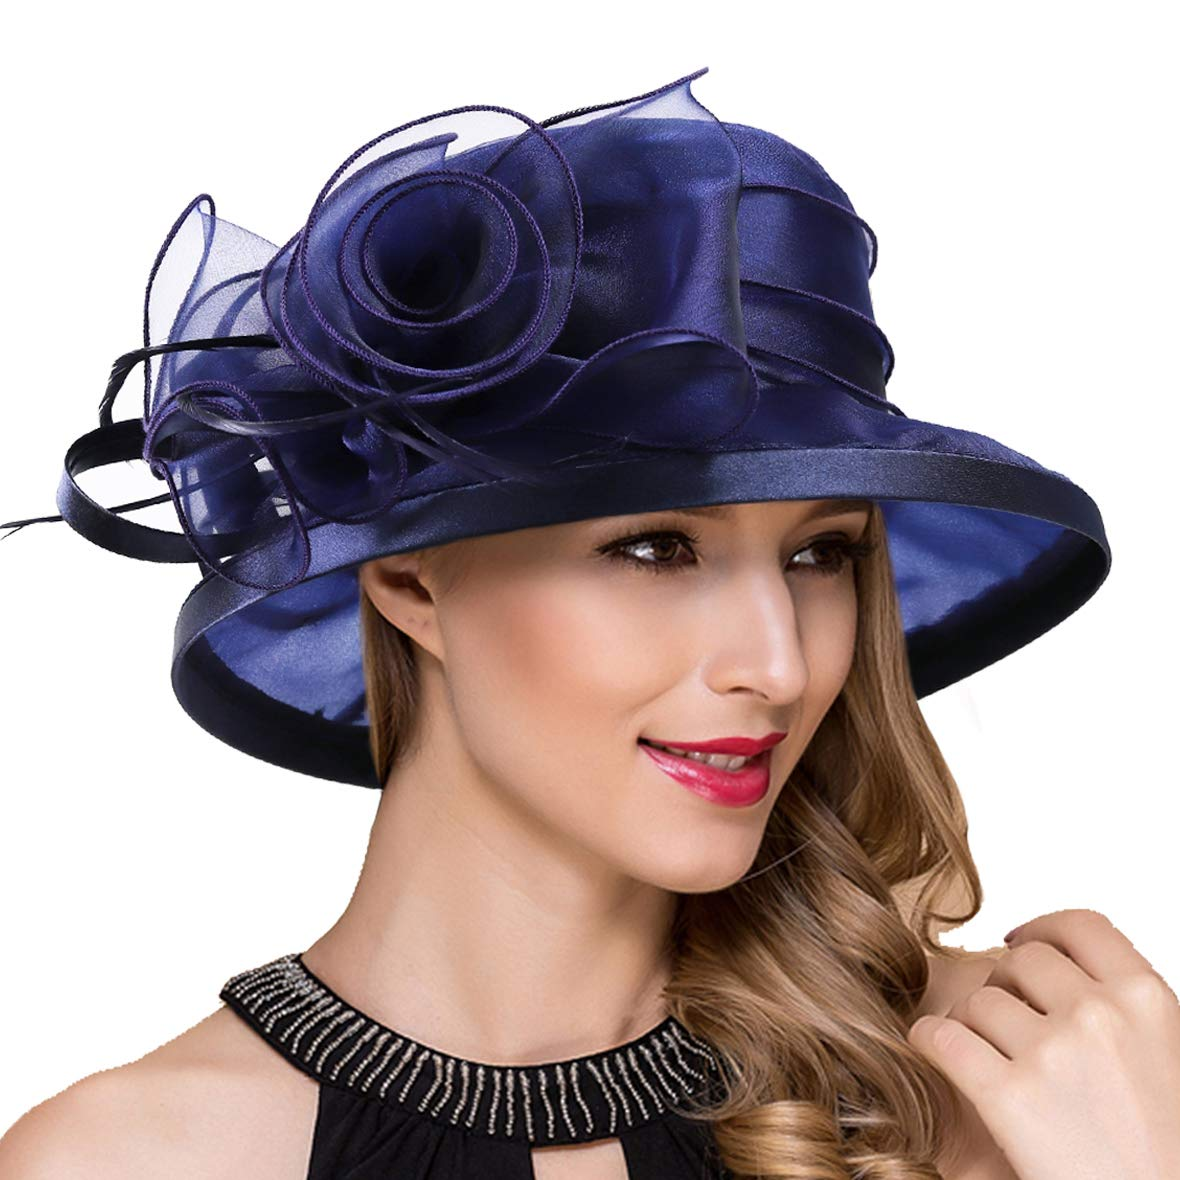 Lady Church Derby Dress Cloche Hat Fascinator Floral Tea Party Wedding Bucket Hat S051 (S043-Navy) by Ruphedy (Image #1)